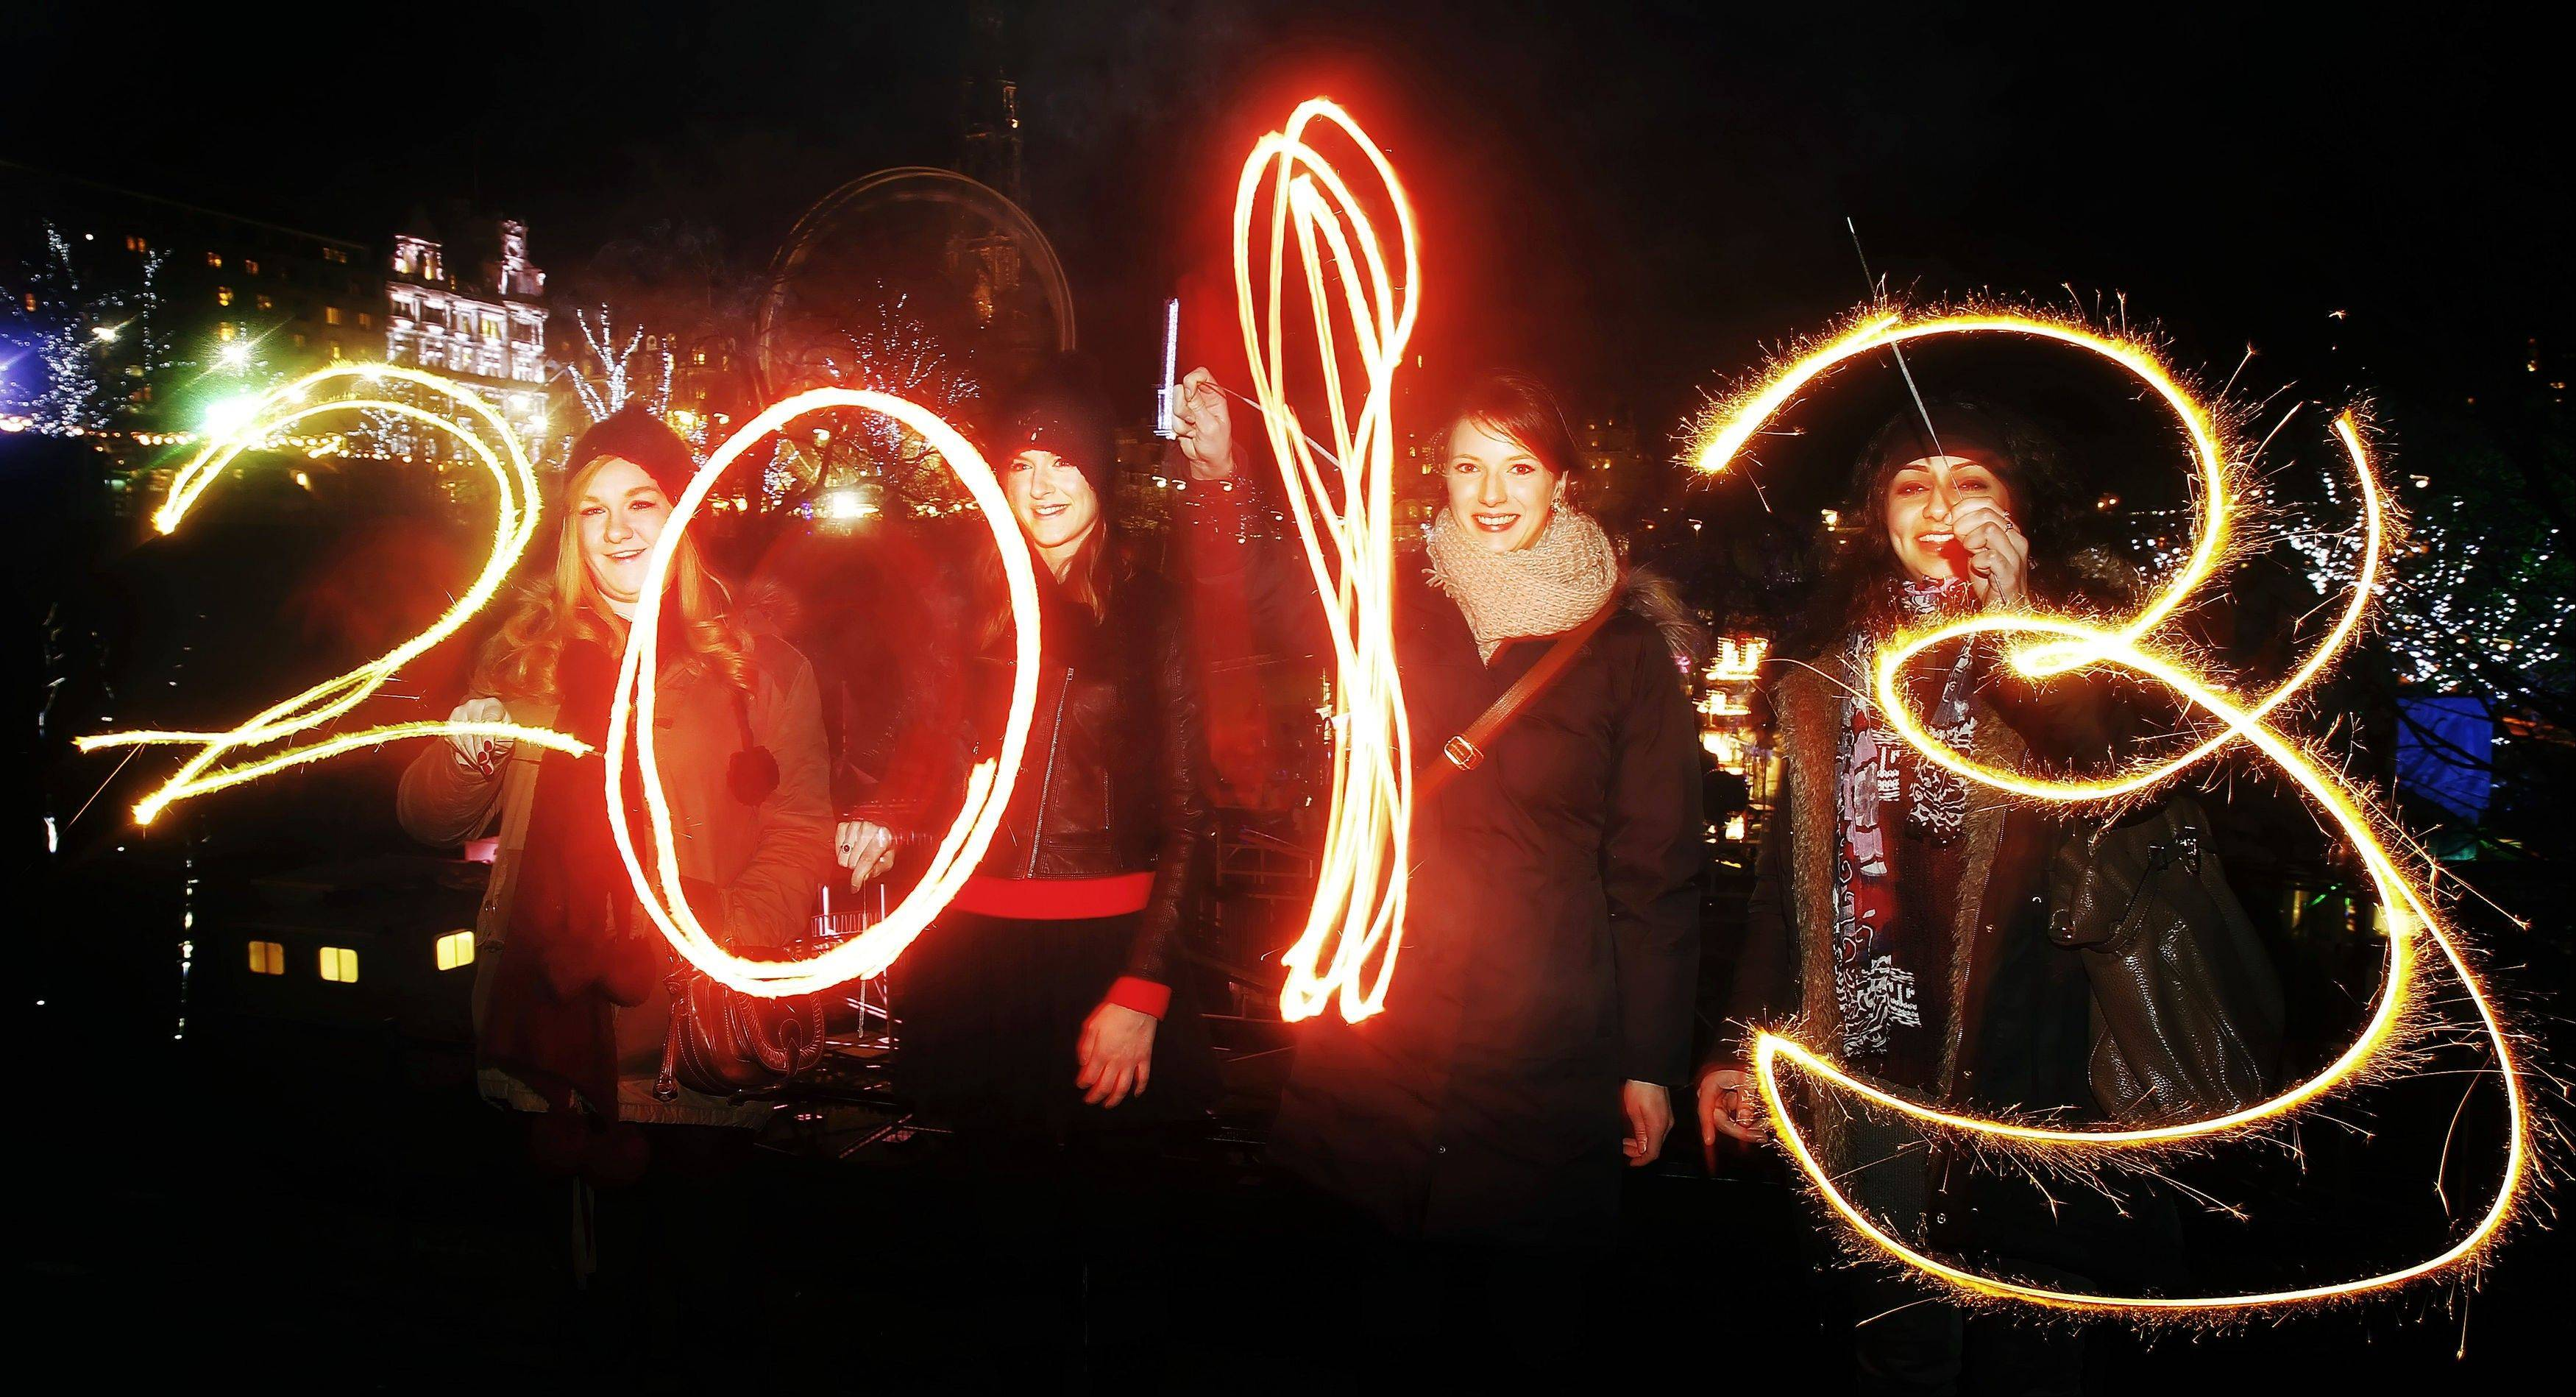 Katy Saunders, left, Alex Mueller, center left, Rebekka Frank and Arina Motamedi, right, play with sparklers ahead of welcoming in the new year during the 2013 Edinburgh Hogmanay celebrations, Scotland, Monday December 31, 2012.